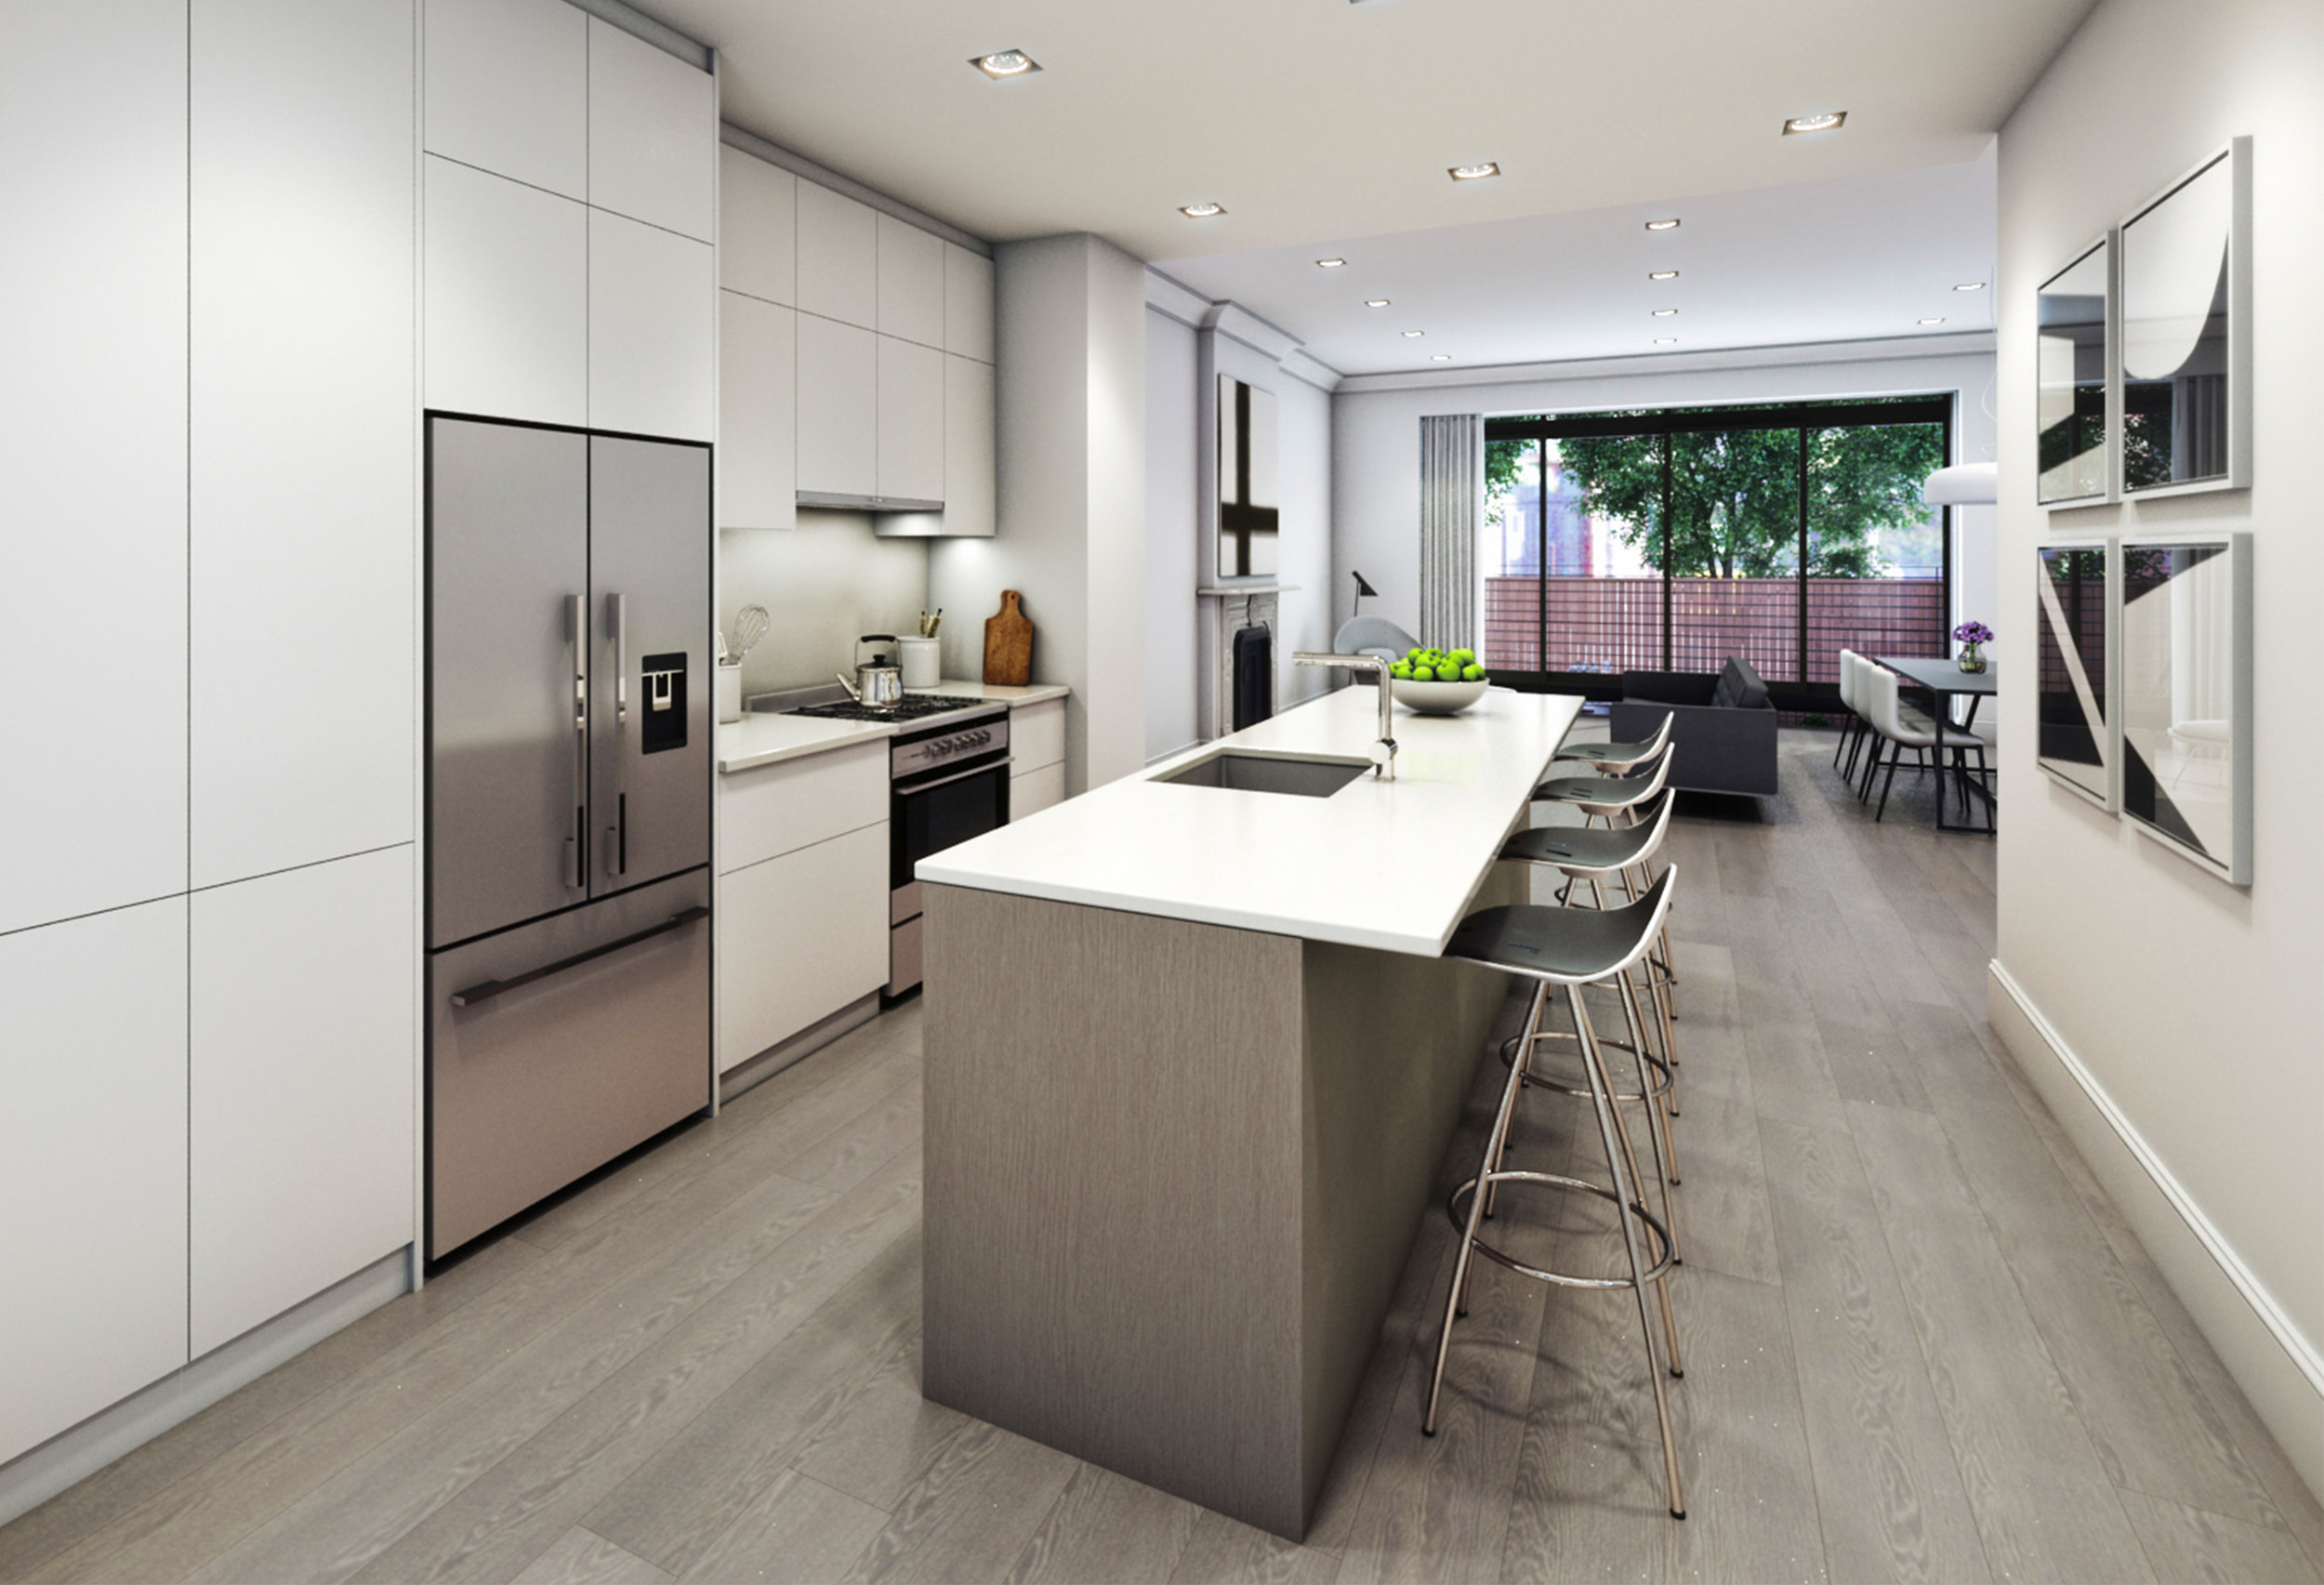 04_DUPLEX KITCHEN_15X22.jpg